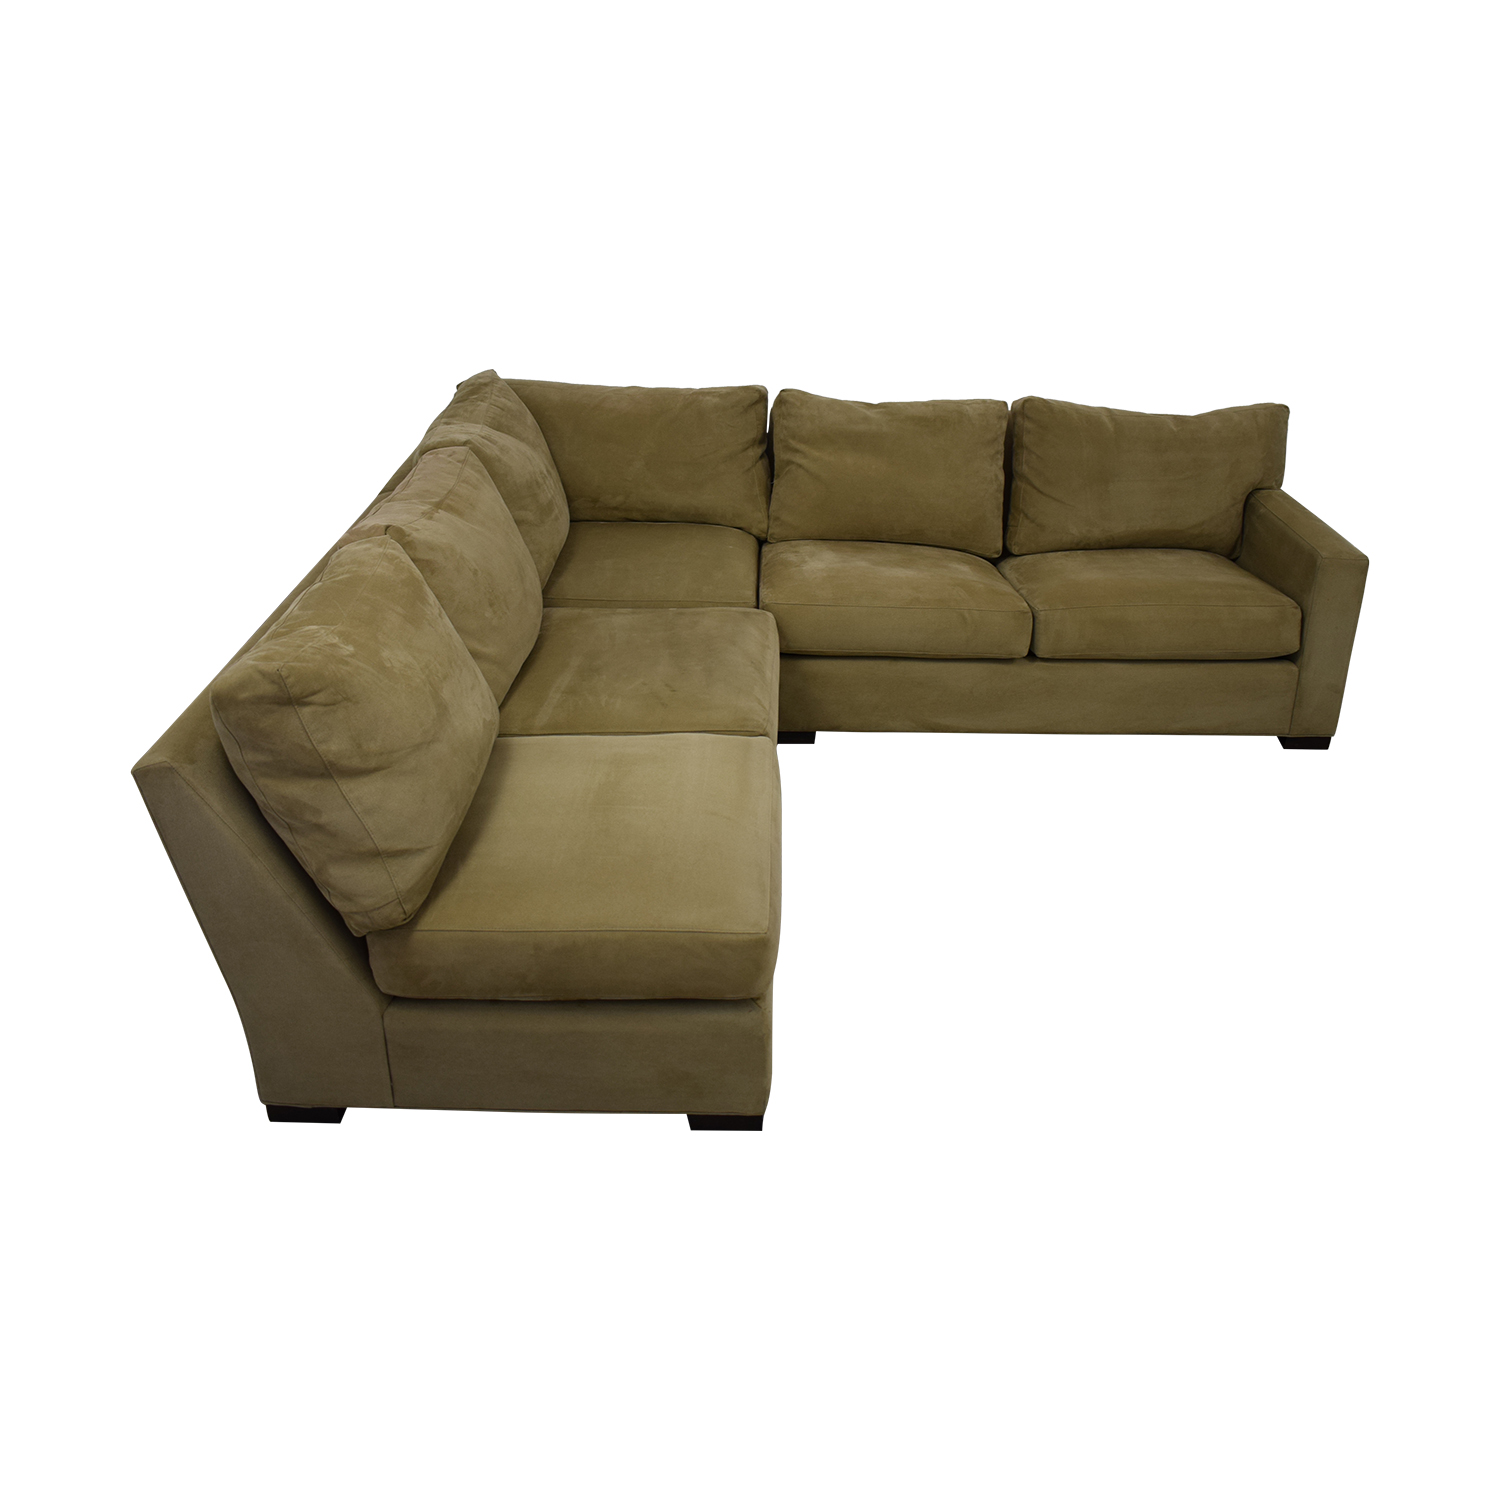 shop Crate & Barrel Axis Beige Three Piece Sleeper Sectional Sofa Crate & Barrel Sofas